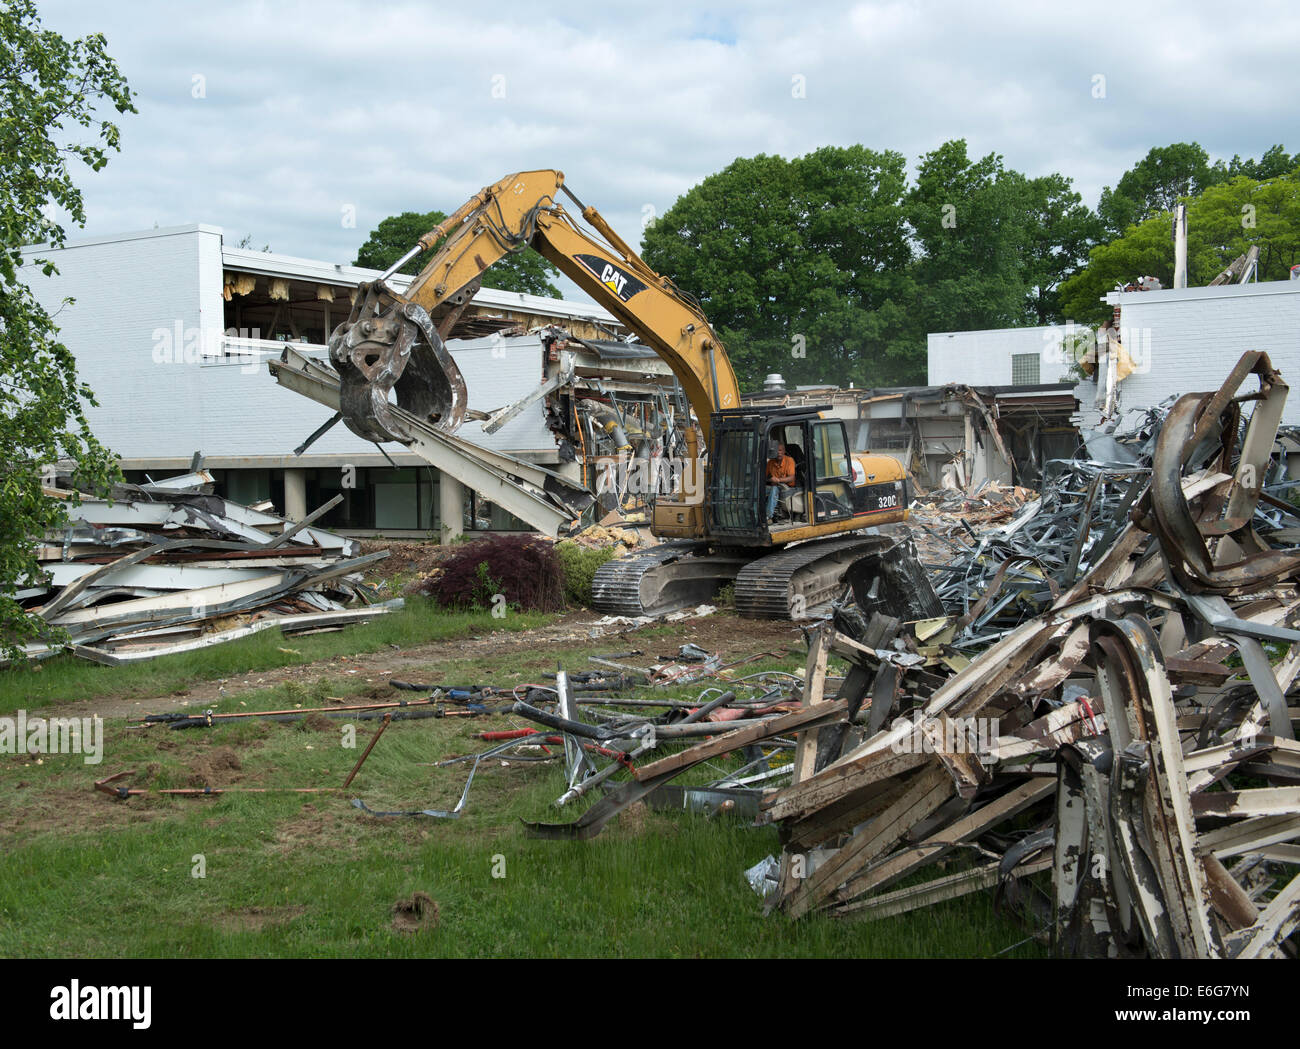 Excavator with grapple doing demolition work on office building in Norwalk, CT.  Materials sorted for recycling. - Stock Image